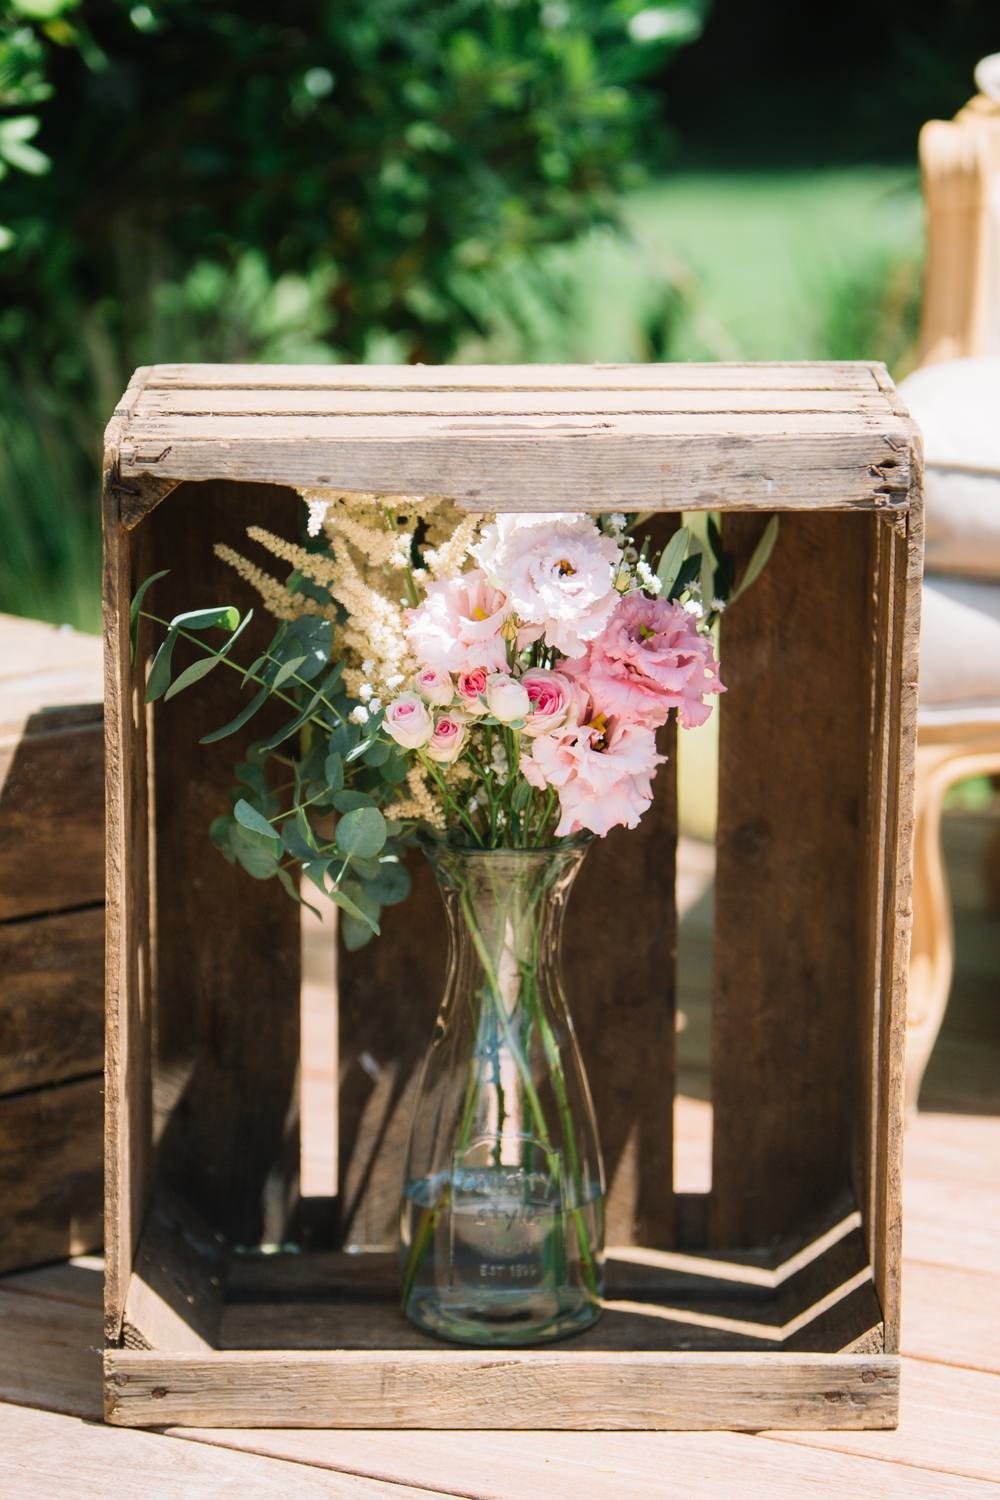 Apple Crate Floral Display Pink Flowers Saint Tropez Wedding Sophie Boulet Photographe